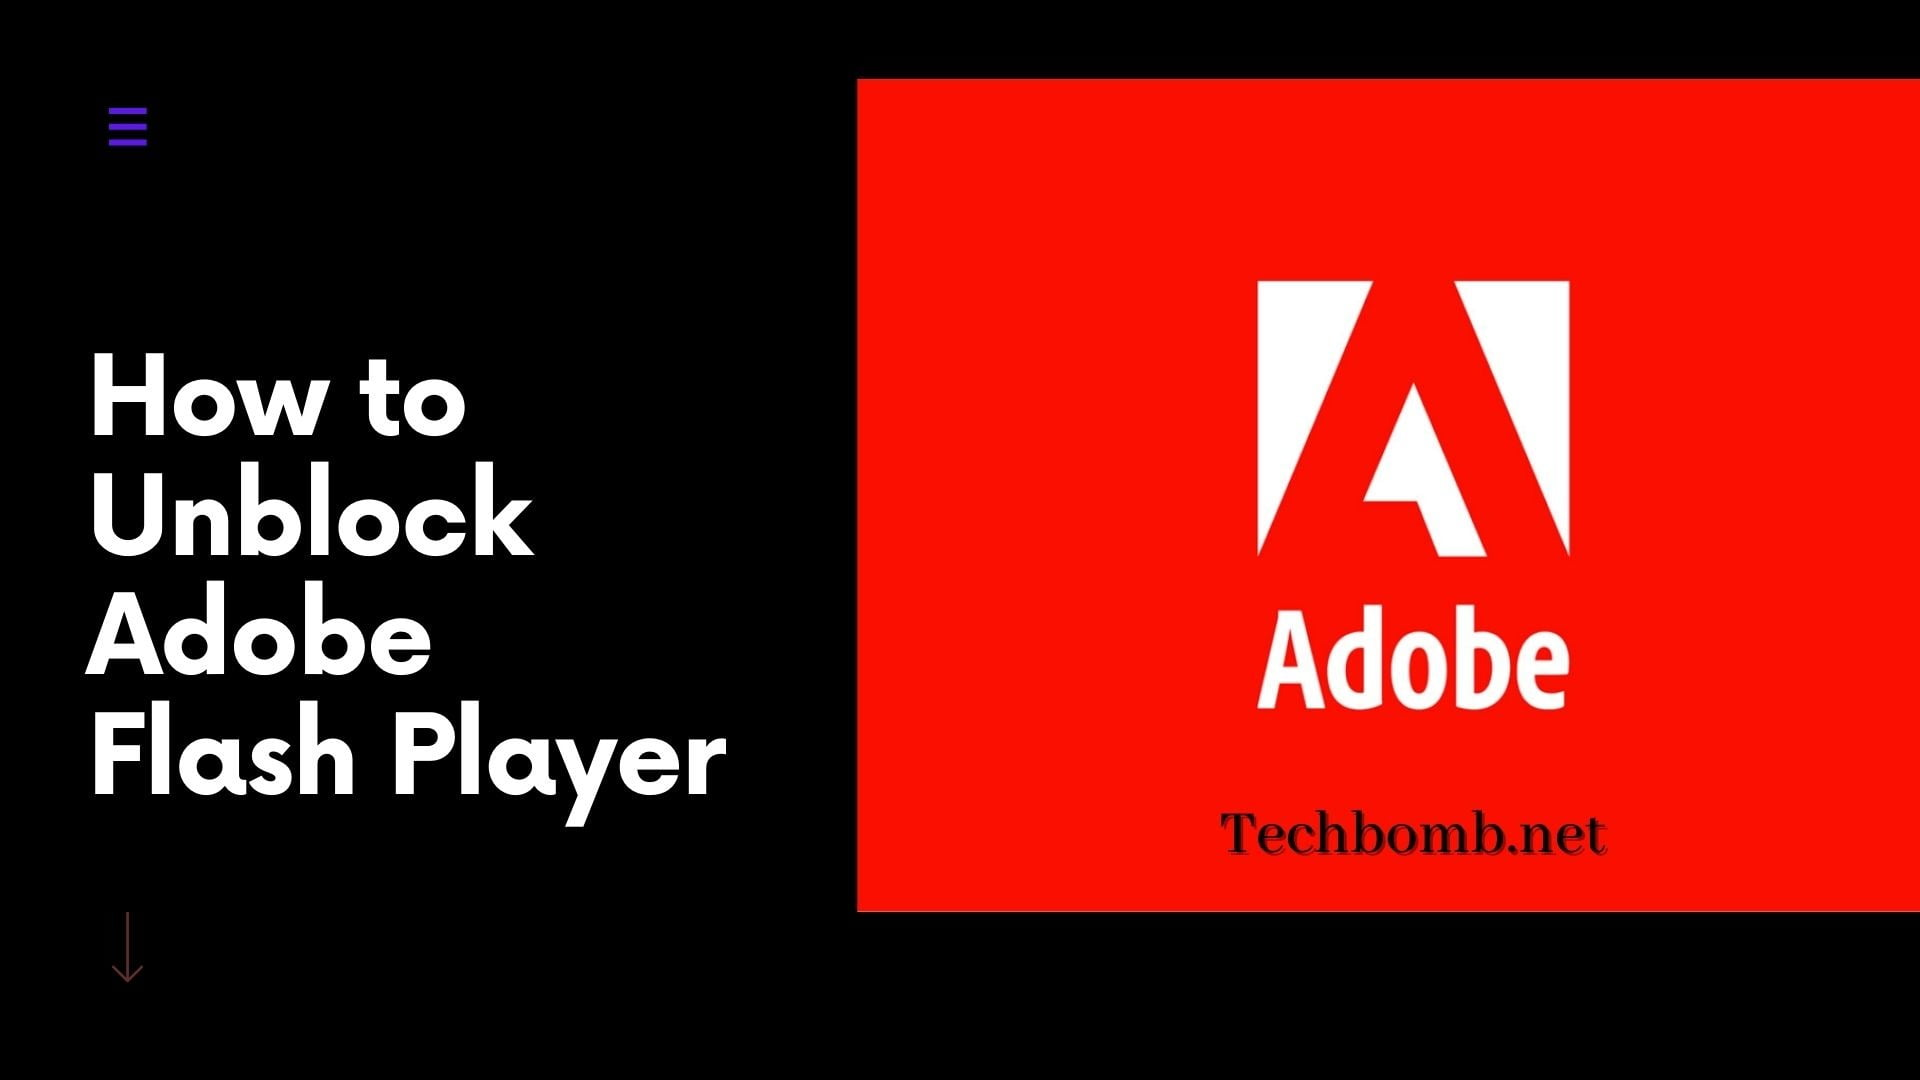 How To Unblock Adobe Flash Player on Google Chrome [Edge and Firefox]